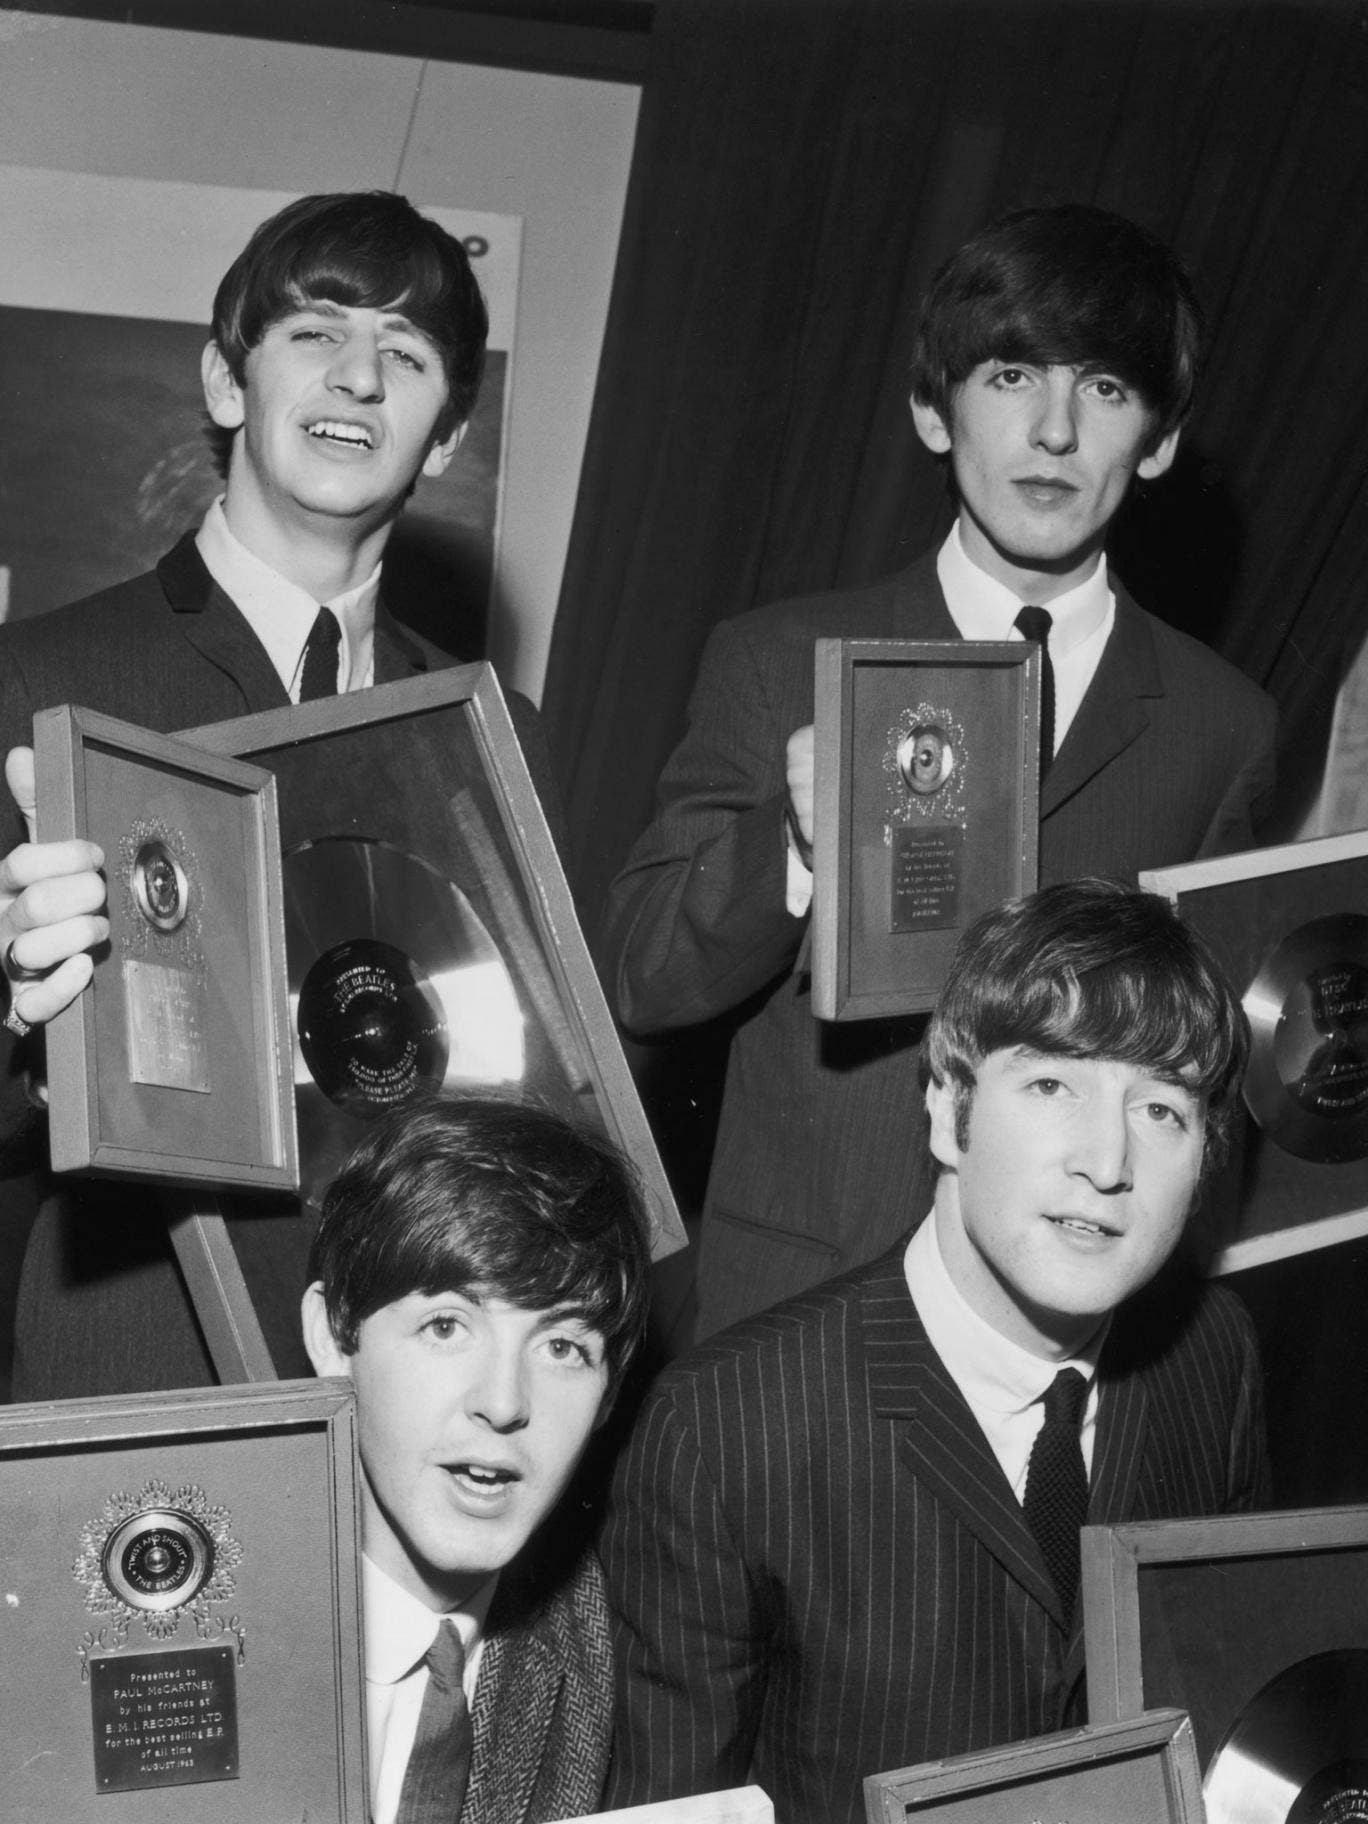 The Beatles with their debut album Please Please Me. It will be re-recorded to celebrate its 50th anniversary